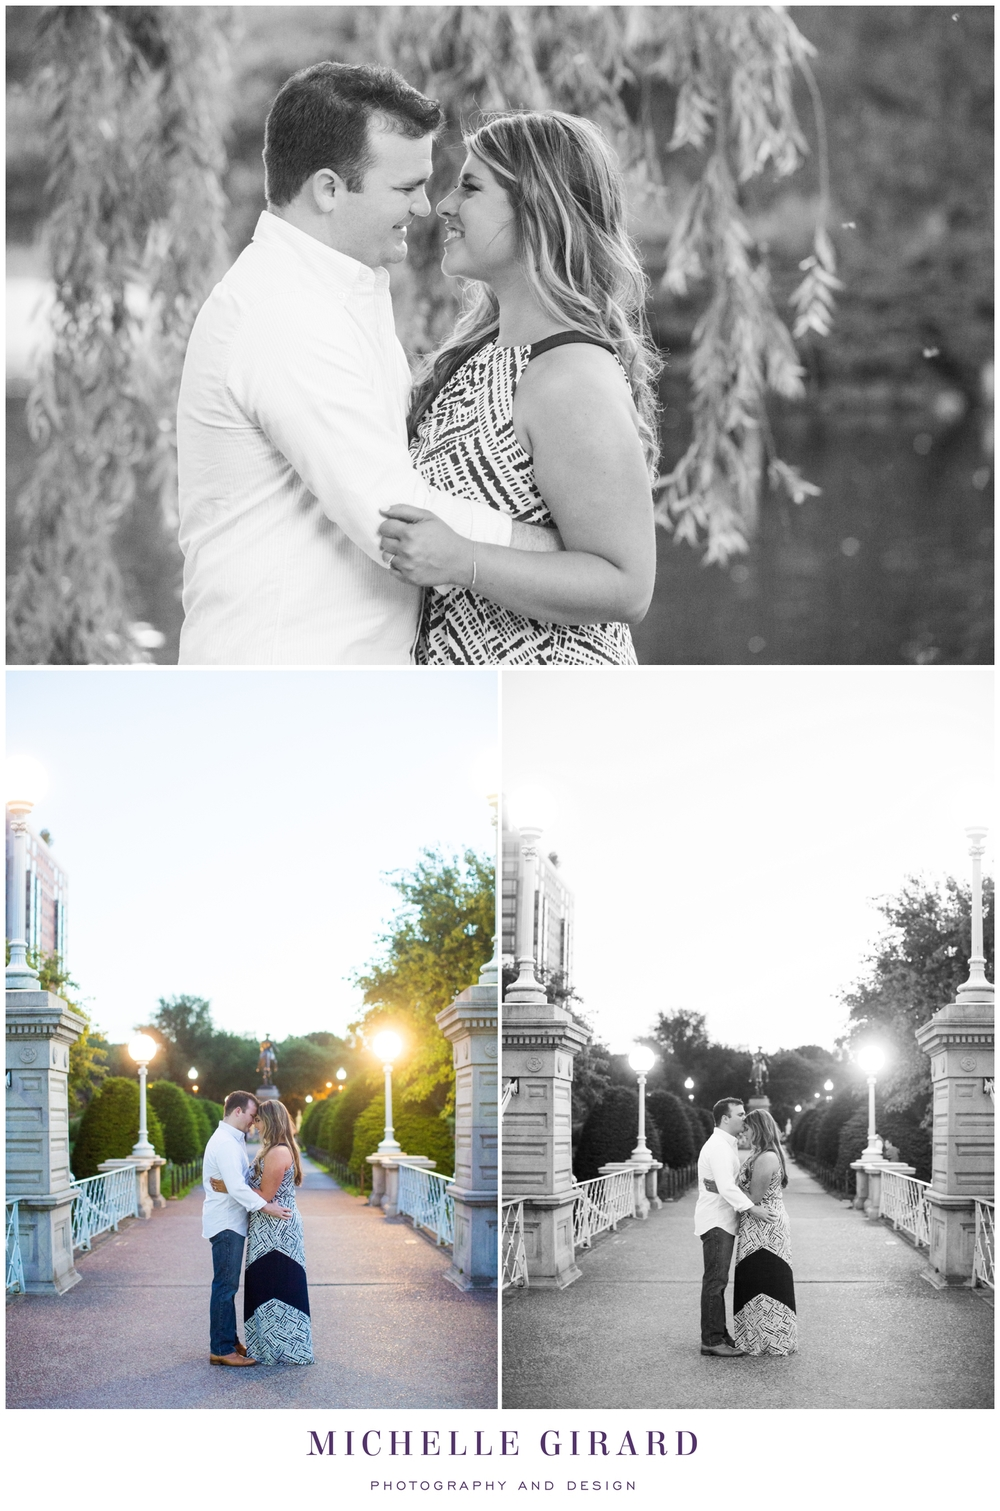 BostonCommonsGardens_BostonEngagementSession_MichelleGirardPhotography03.jpg